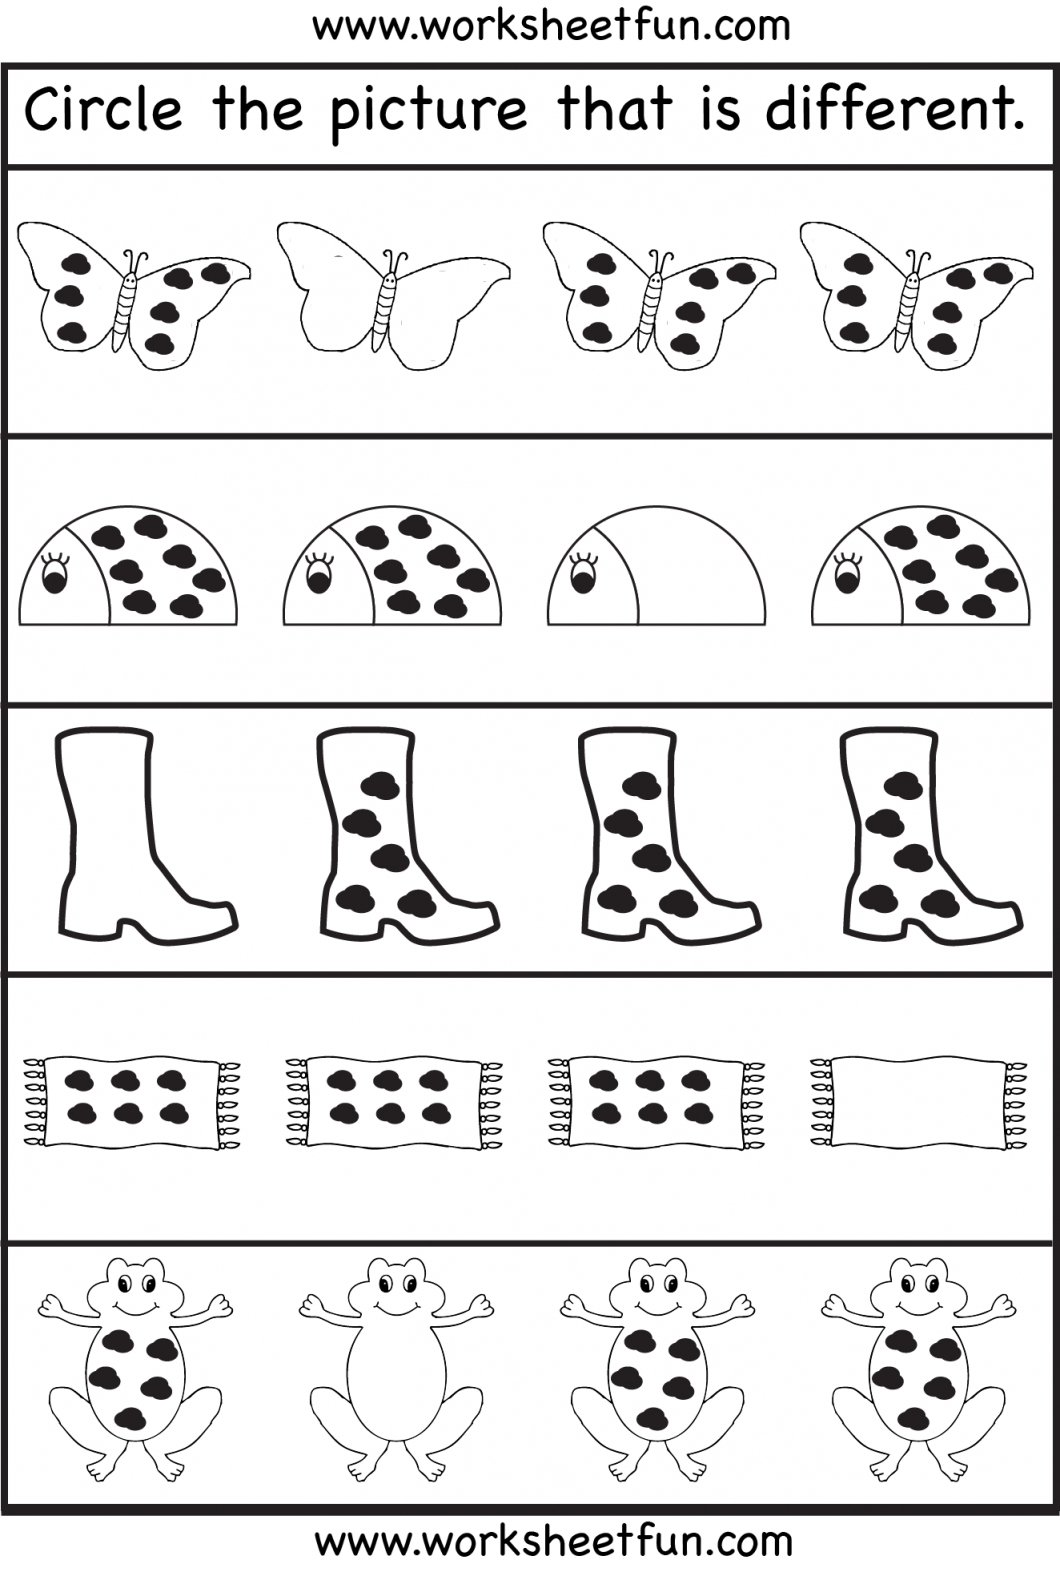 Educational Activities For 3 Year Olds Printable – With Preschool - Free Printable Same And Different Worksheets